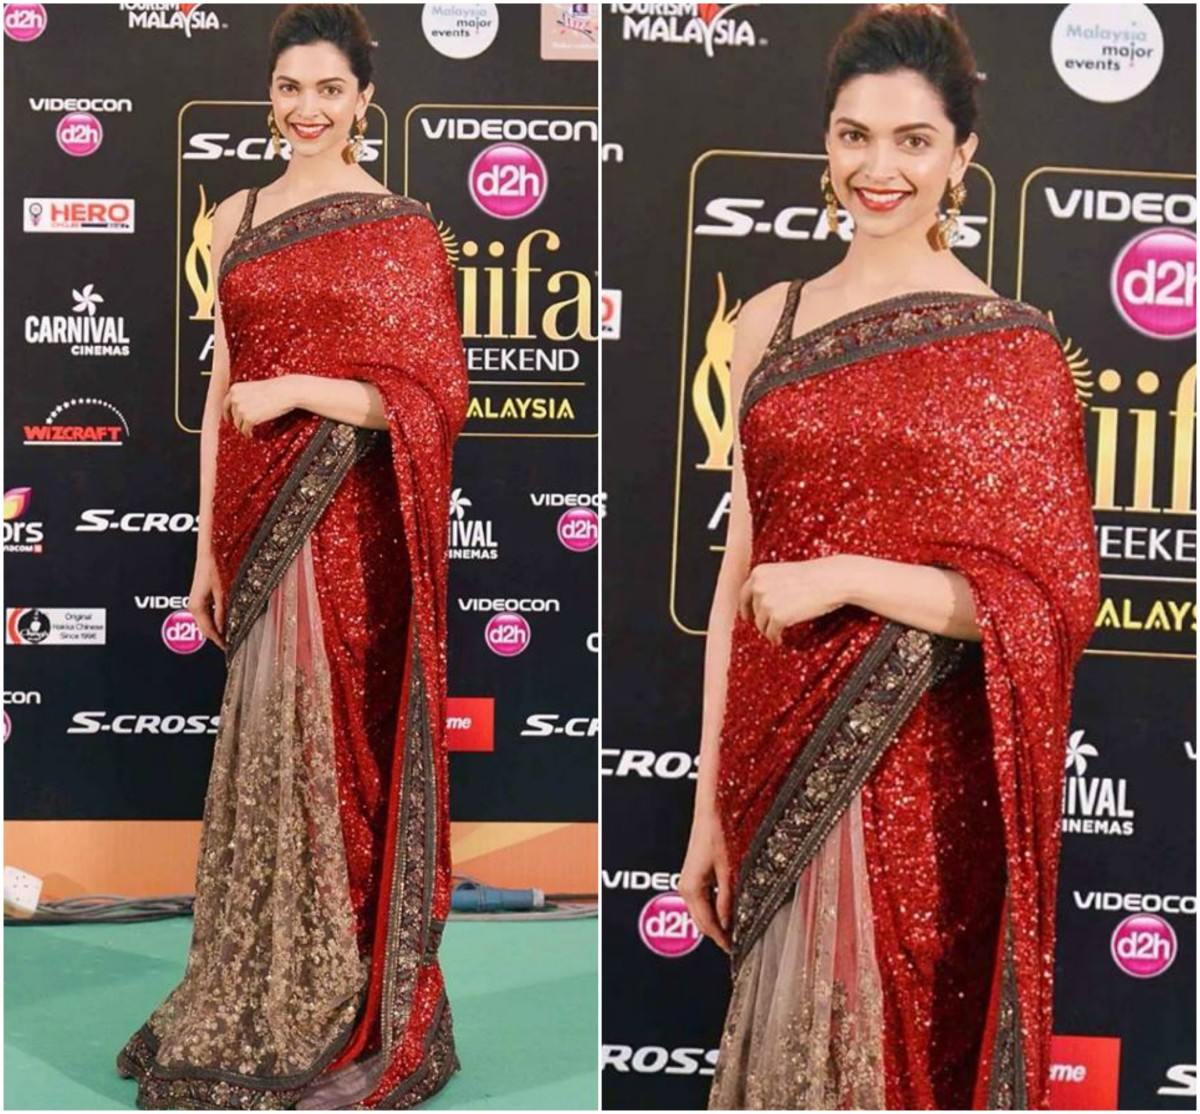 Deepika's shimmery half-and-half saree.